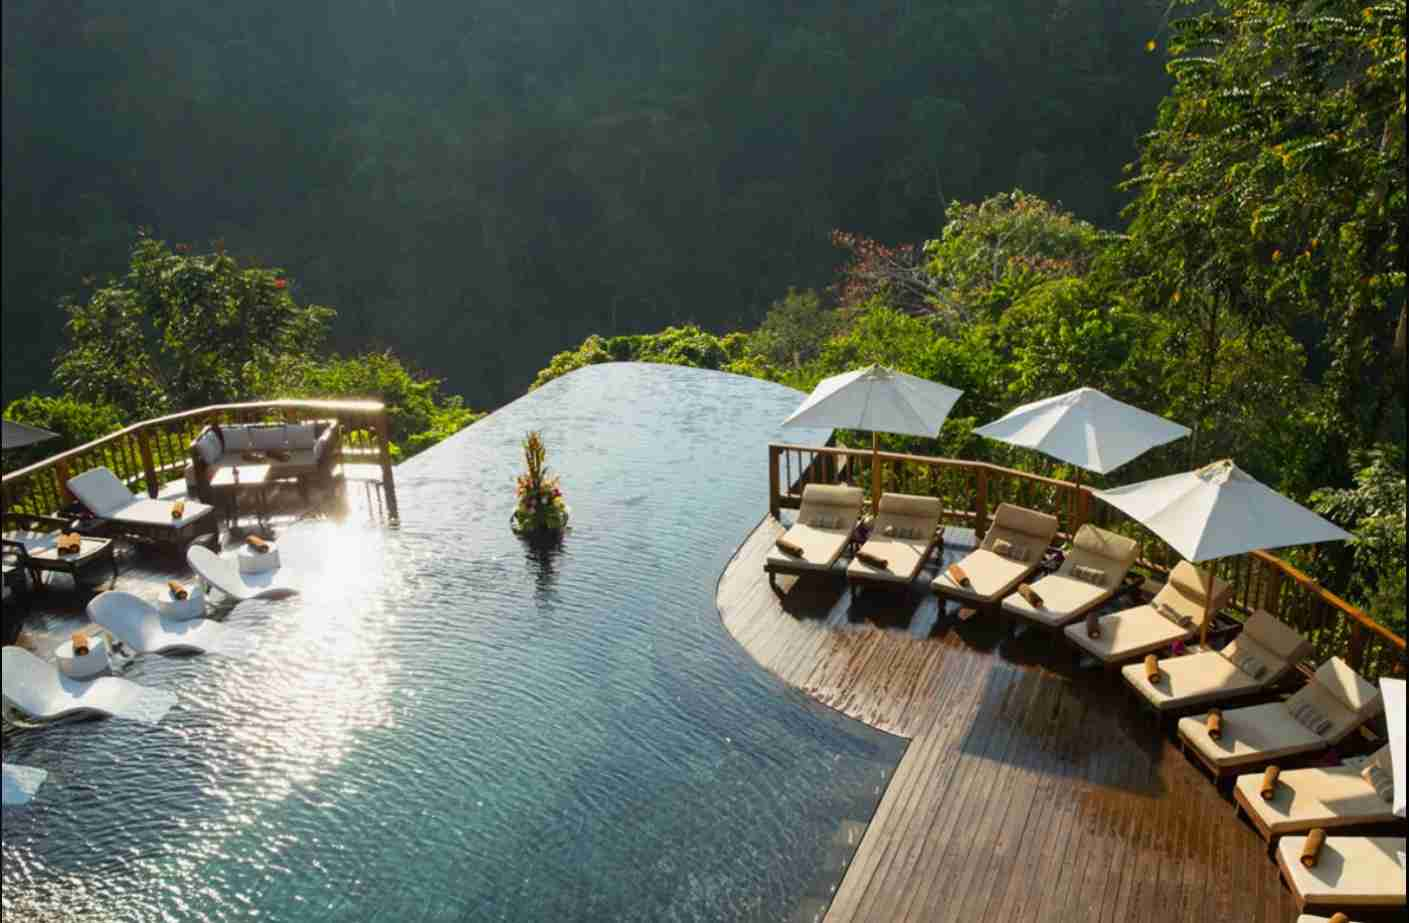 Hanging Gardens lives up to its name. Image courtesy of Hanging Gardens of Bali.